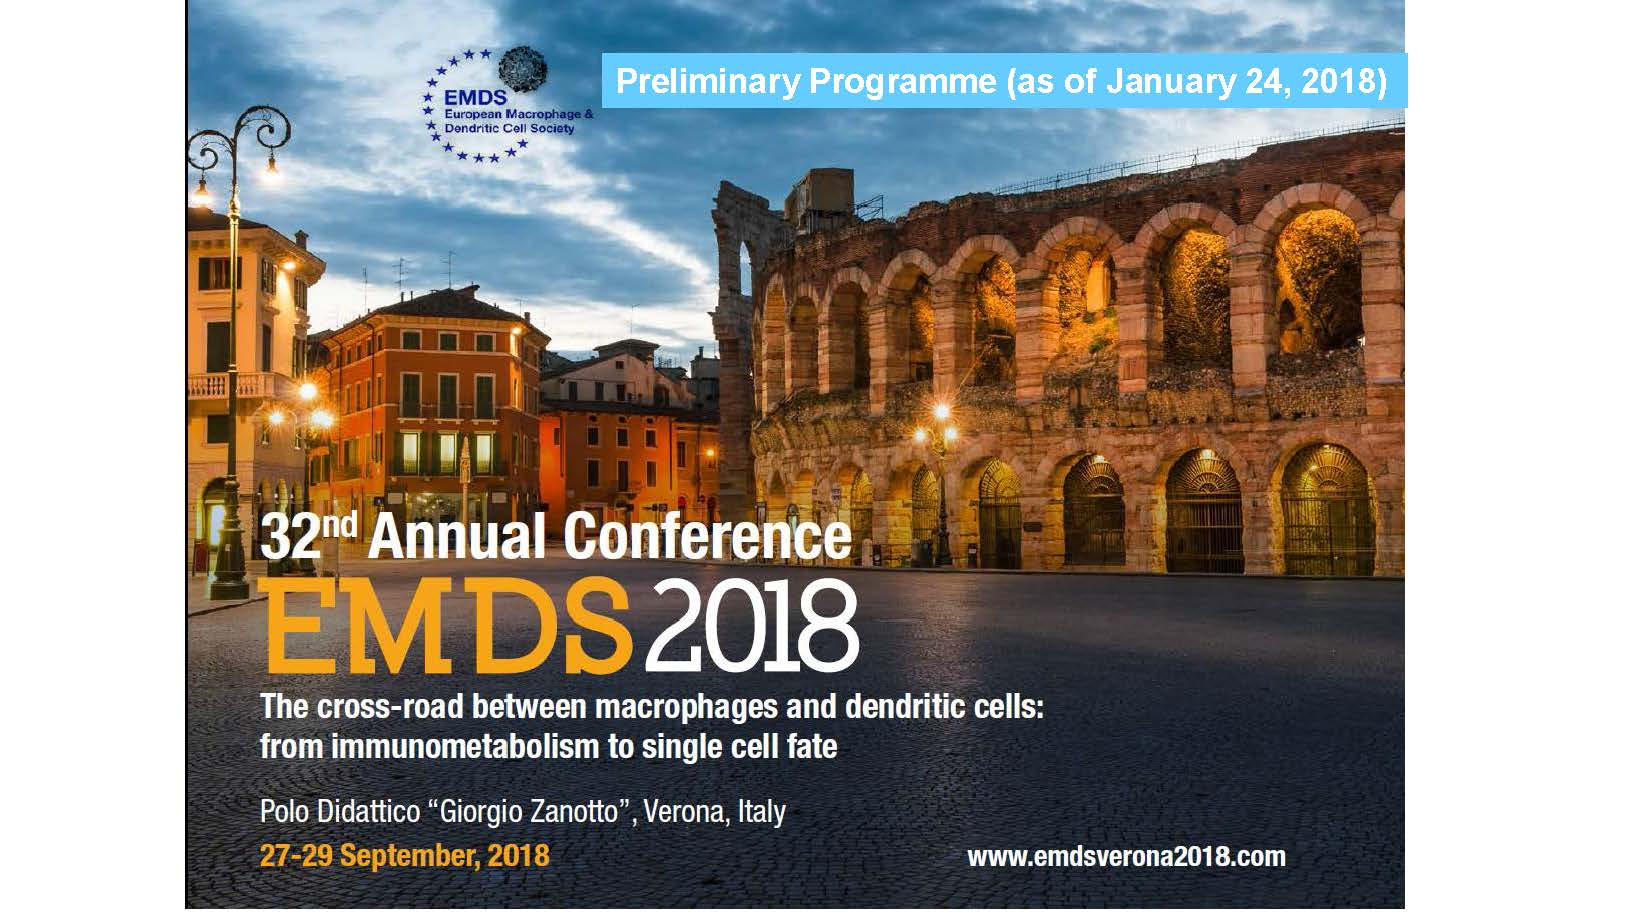 Preliminary programme 32nd Annual EMDS conference-Verona-Sep.27-292018-as-of-Jan 242018_Seite_1